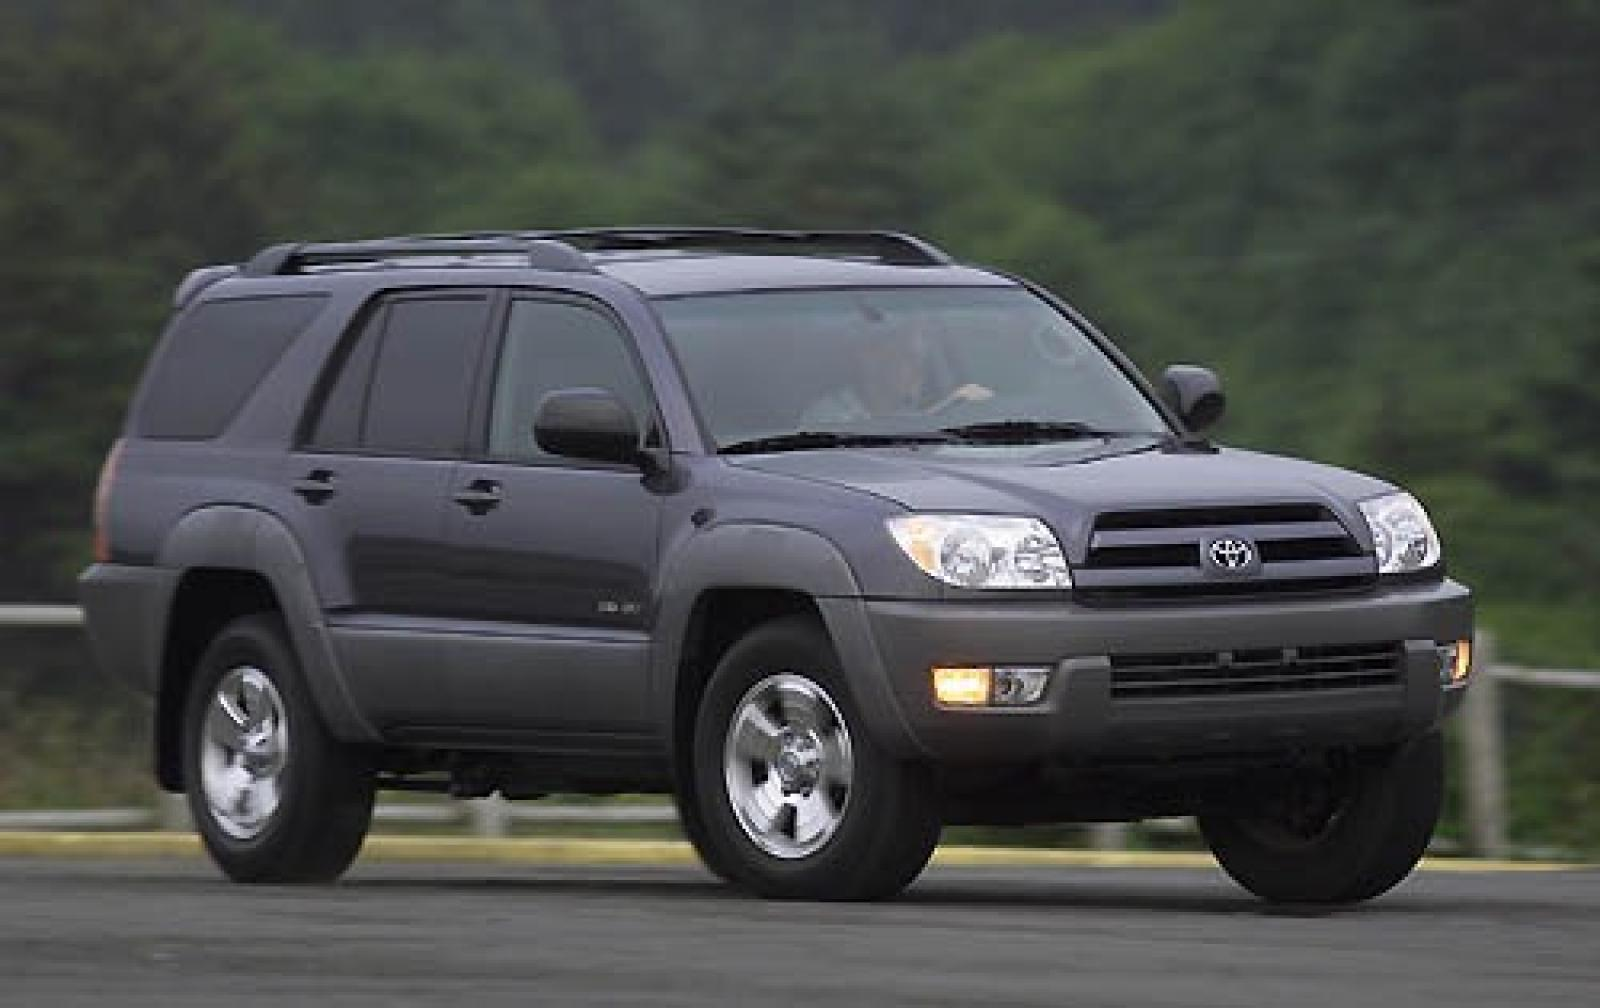 2005 Toyota 4Runner - Information and photos - Zomb Drive